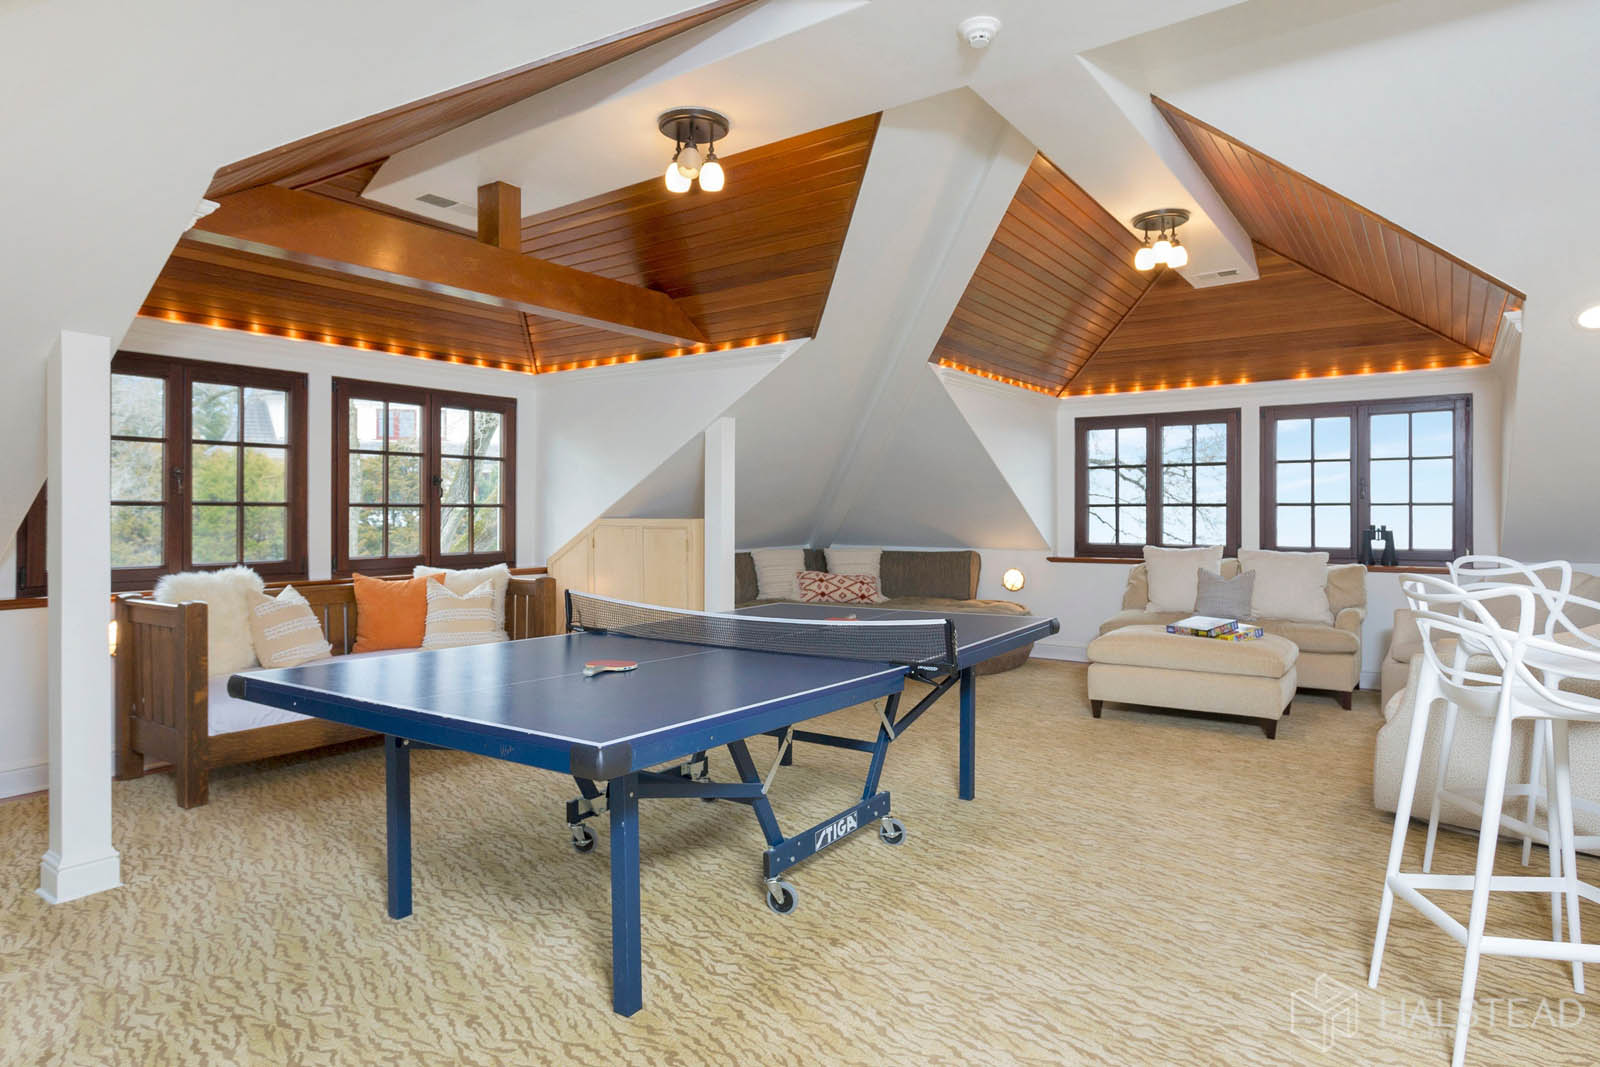 25 Butlers Island Road, Darien, Connecticut, 06820, $10,900,000, Property For Sale, Halstead Real Estate, Photo 13